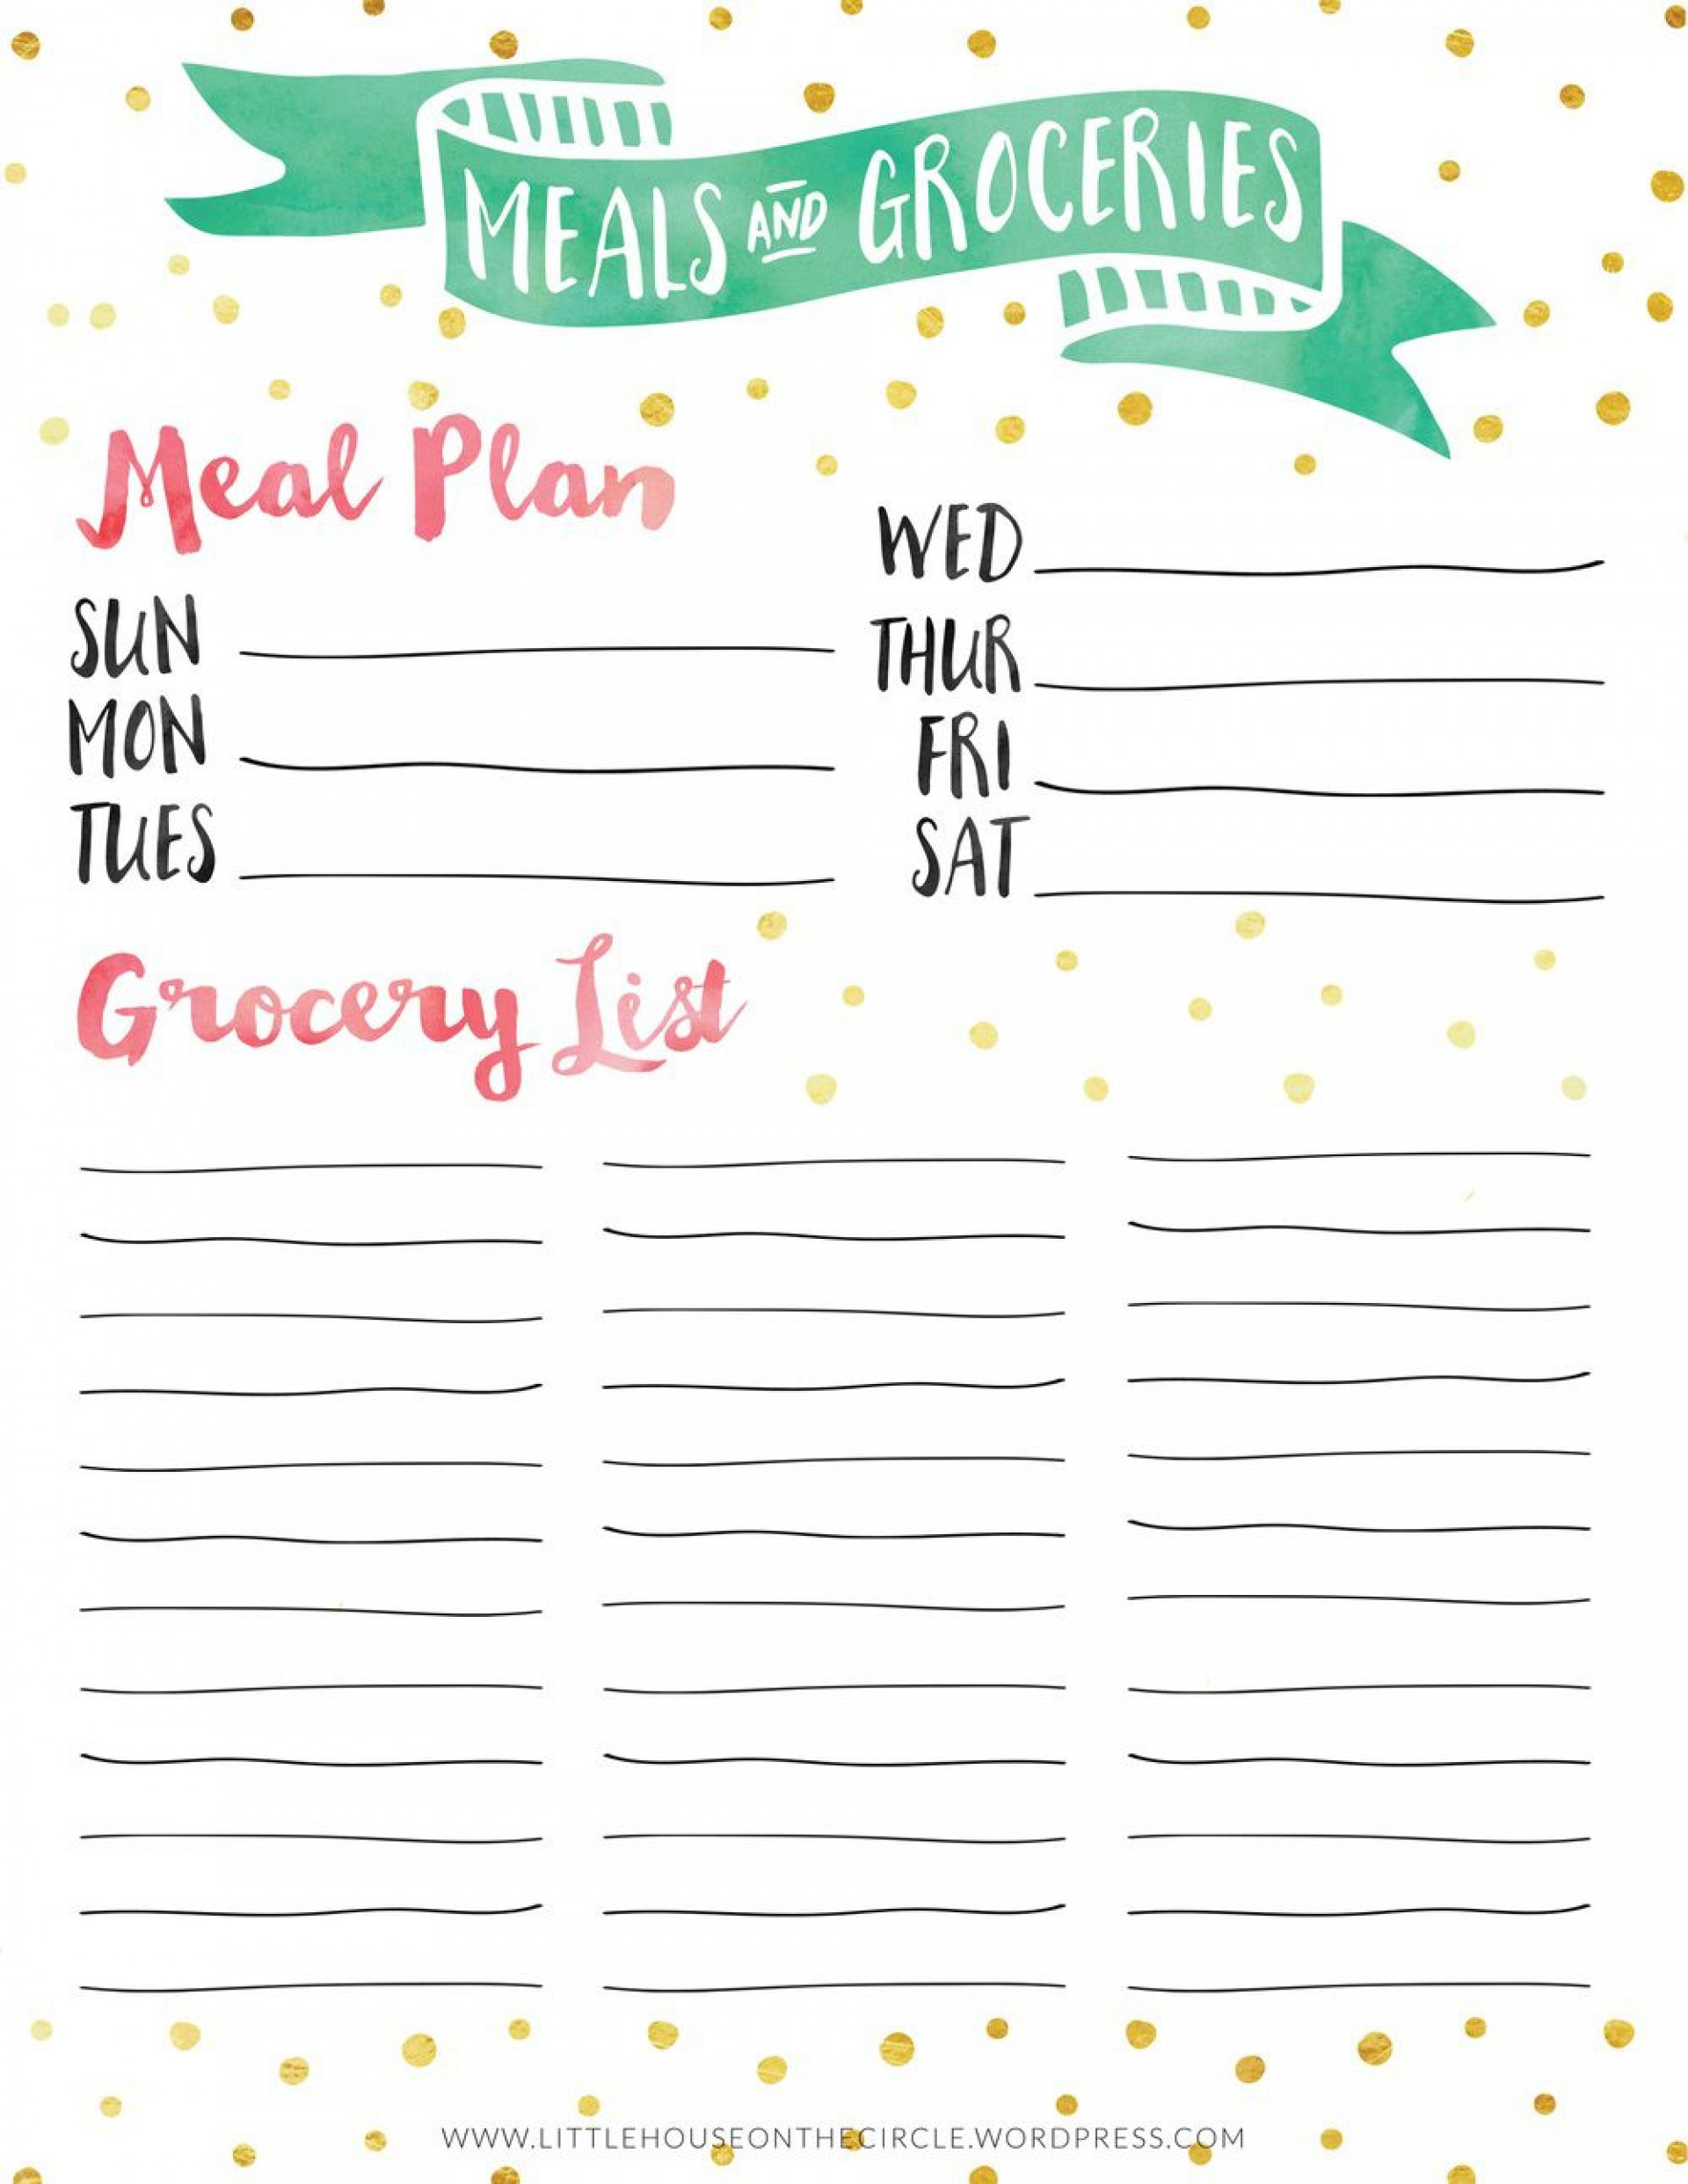 005 Dreaded Meal Plan With Printable Grocery List Inspiration  Planning Template Excel Free1920